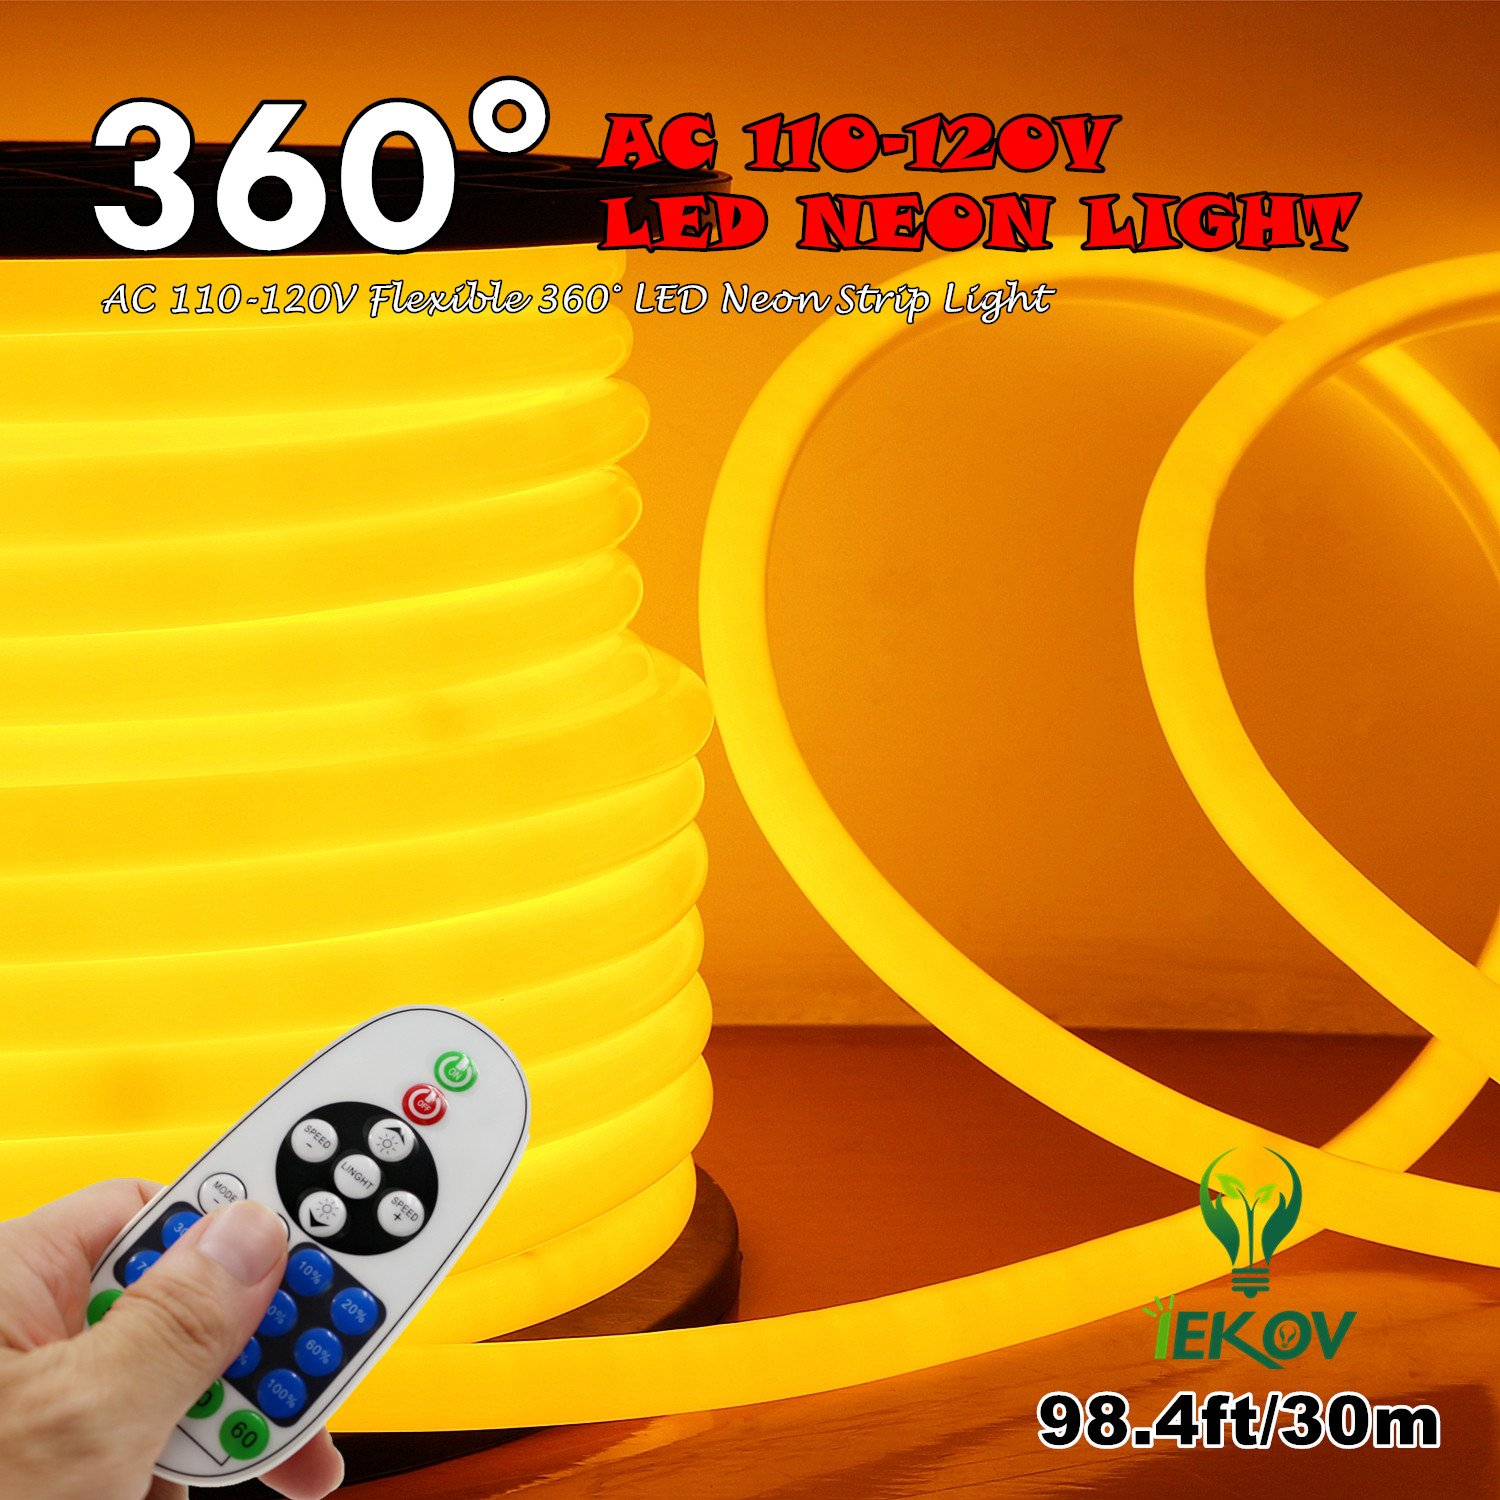 [UPGRADE] 360° LED NEON LIGHT, IEKOV™ AC 110-120V Flexible 360 Degree LED Neon Strip Light, Dimmable & Waterproof NEON LED Rope Light+Remote Controller (98.4ft/30m, Golden Yellow)